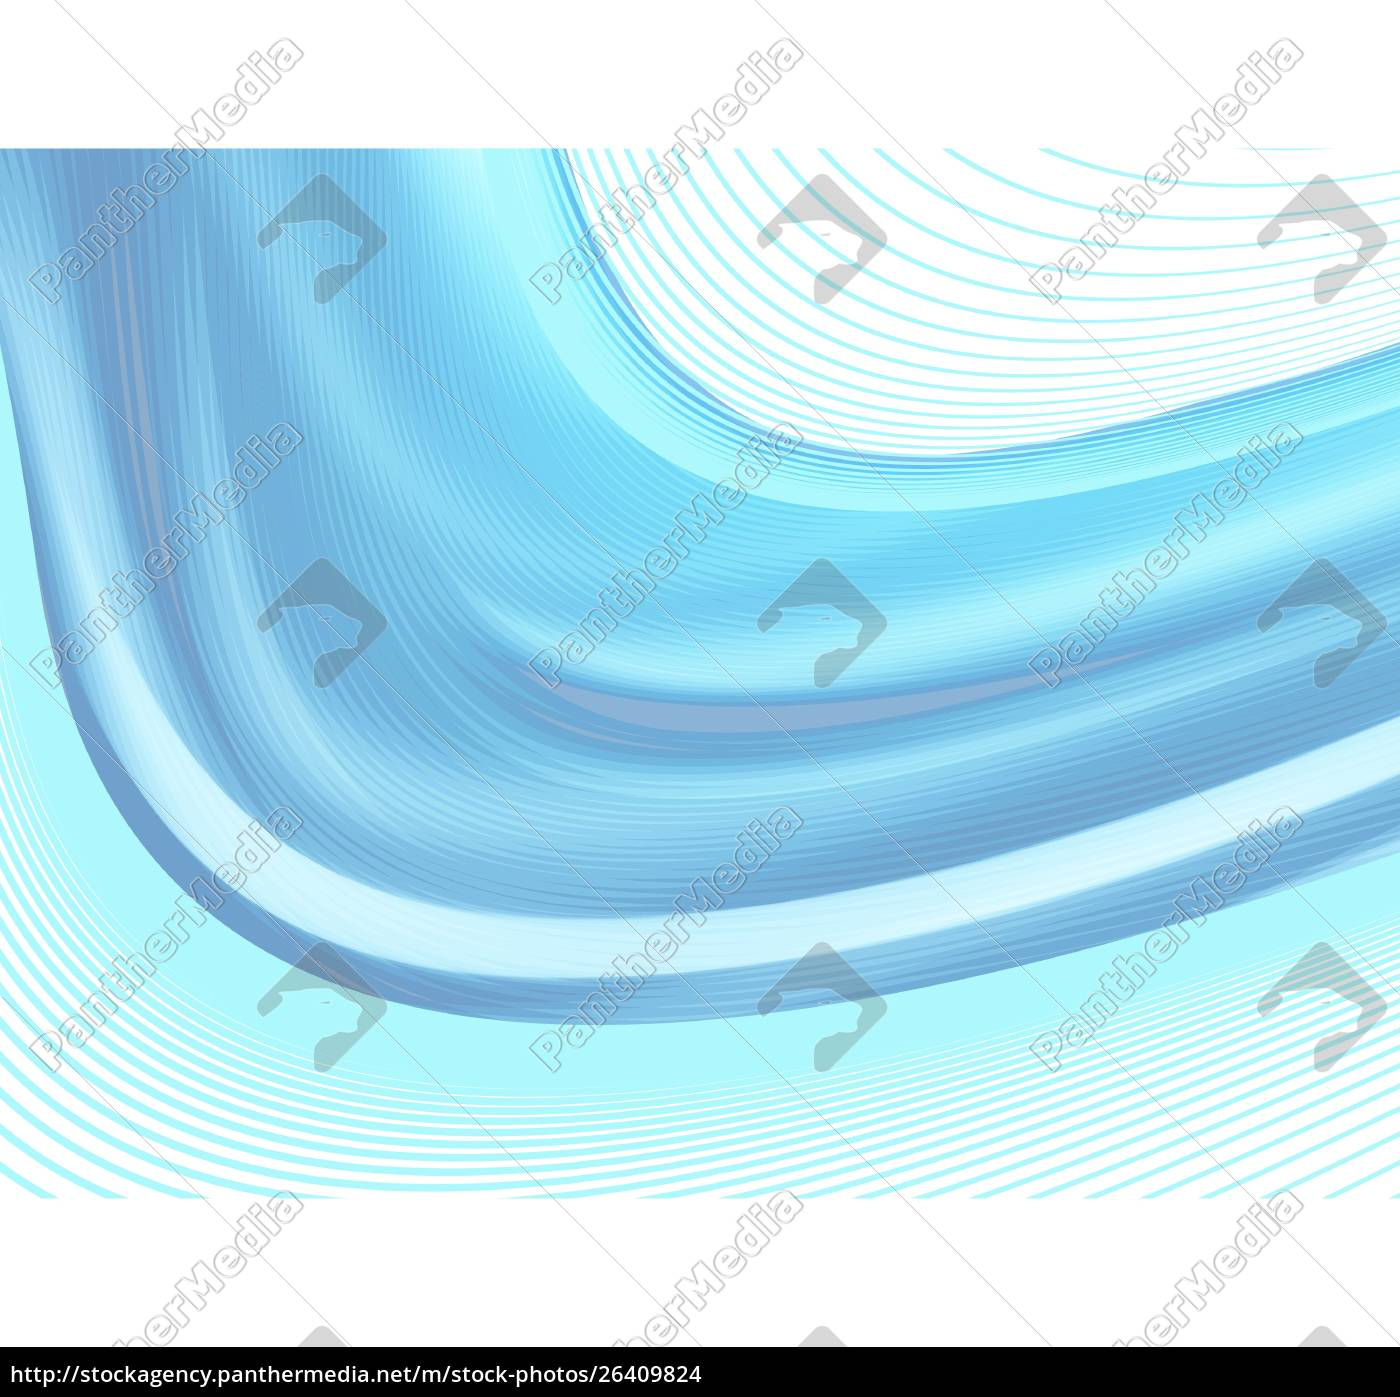 abstract, background, , vector., vector, wavy, and - 26409824